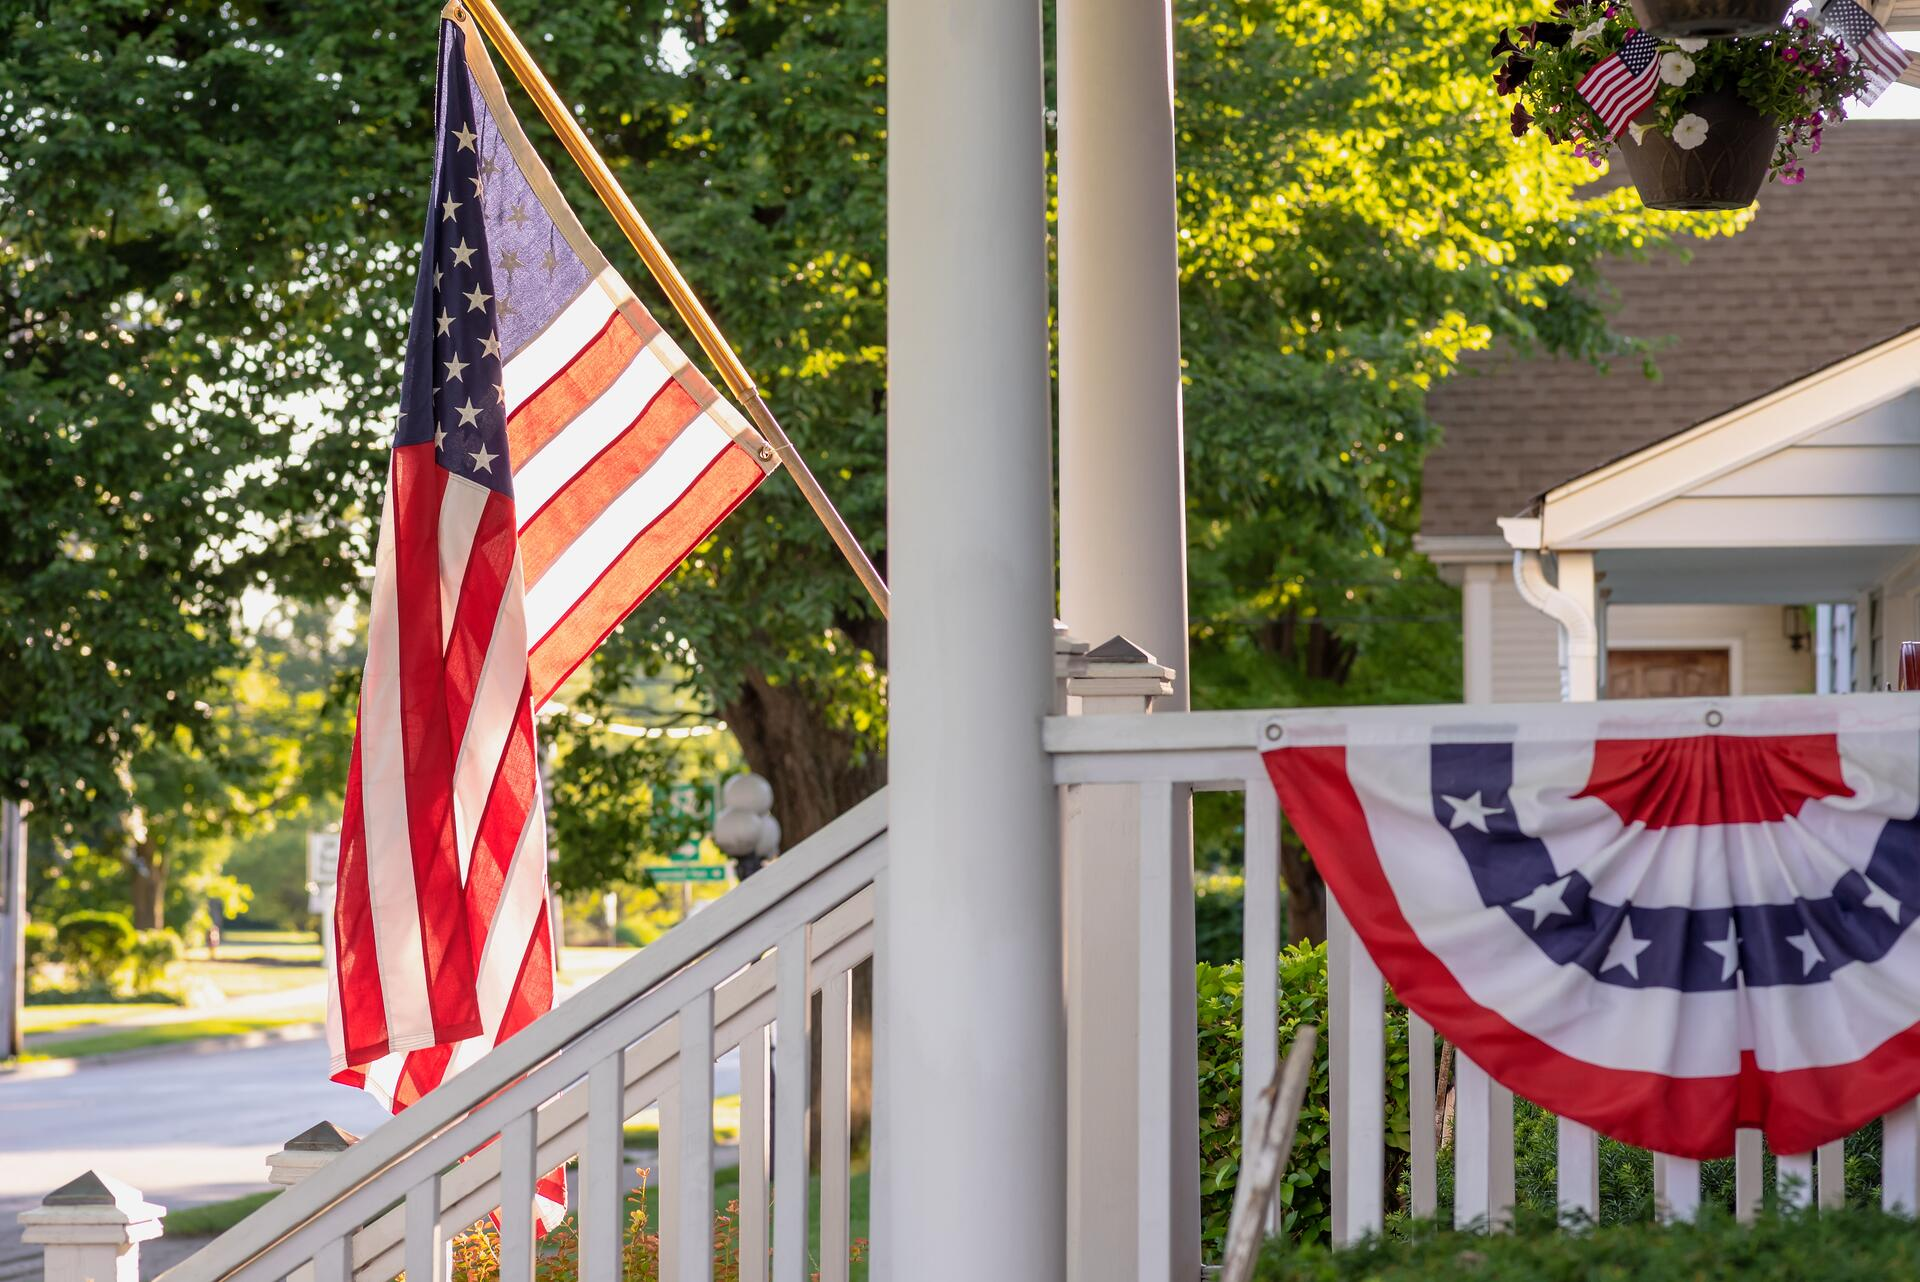 home-decorated-for-fourth-of-july-in-early-morning-light-flag-day-veterans-day-memorial-day_t20_ooZWlR